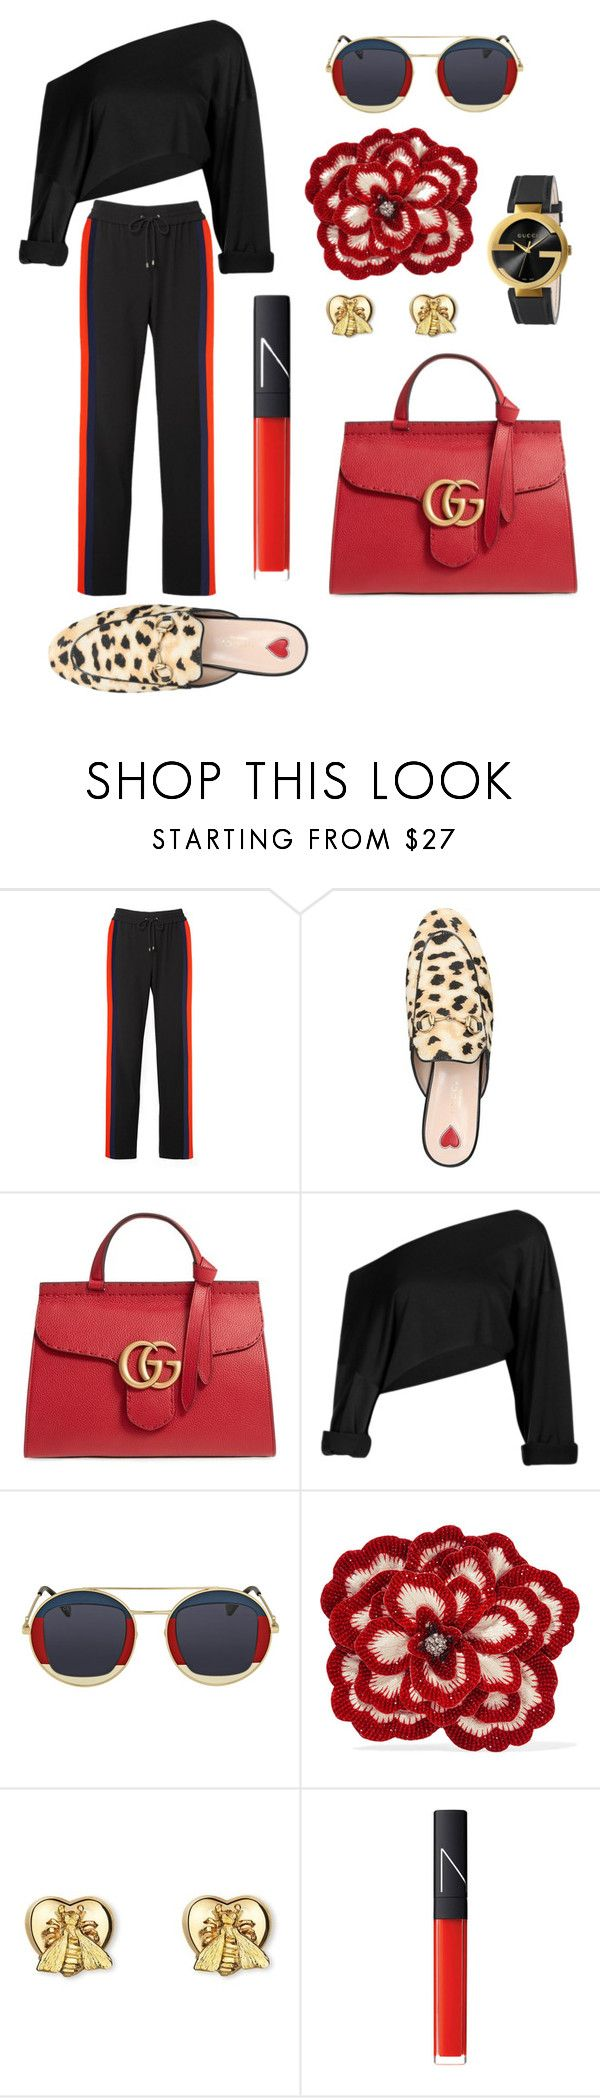 """Brunch DATE!!"" by joyphoenix ❤ liked on Polyvore featuring Kenzo, Gucci and NARS Cosmetics"